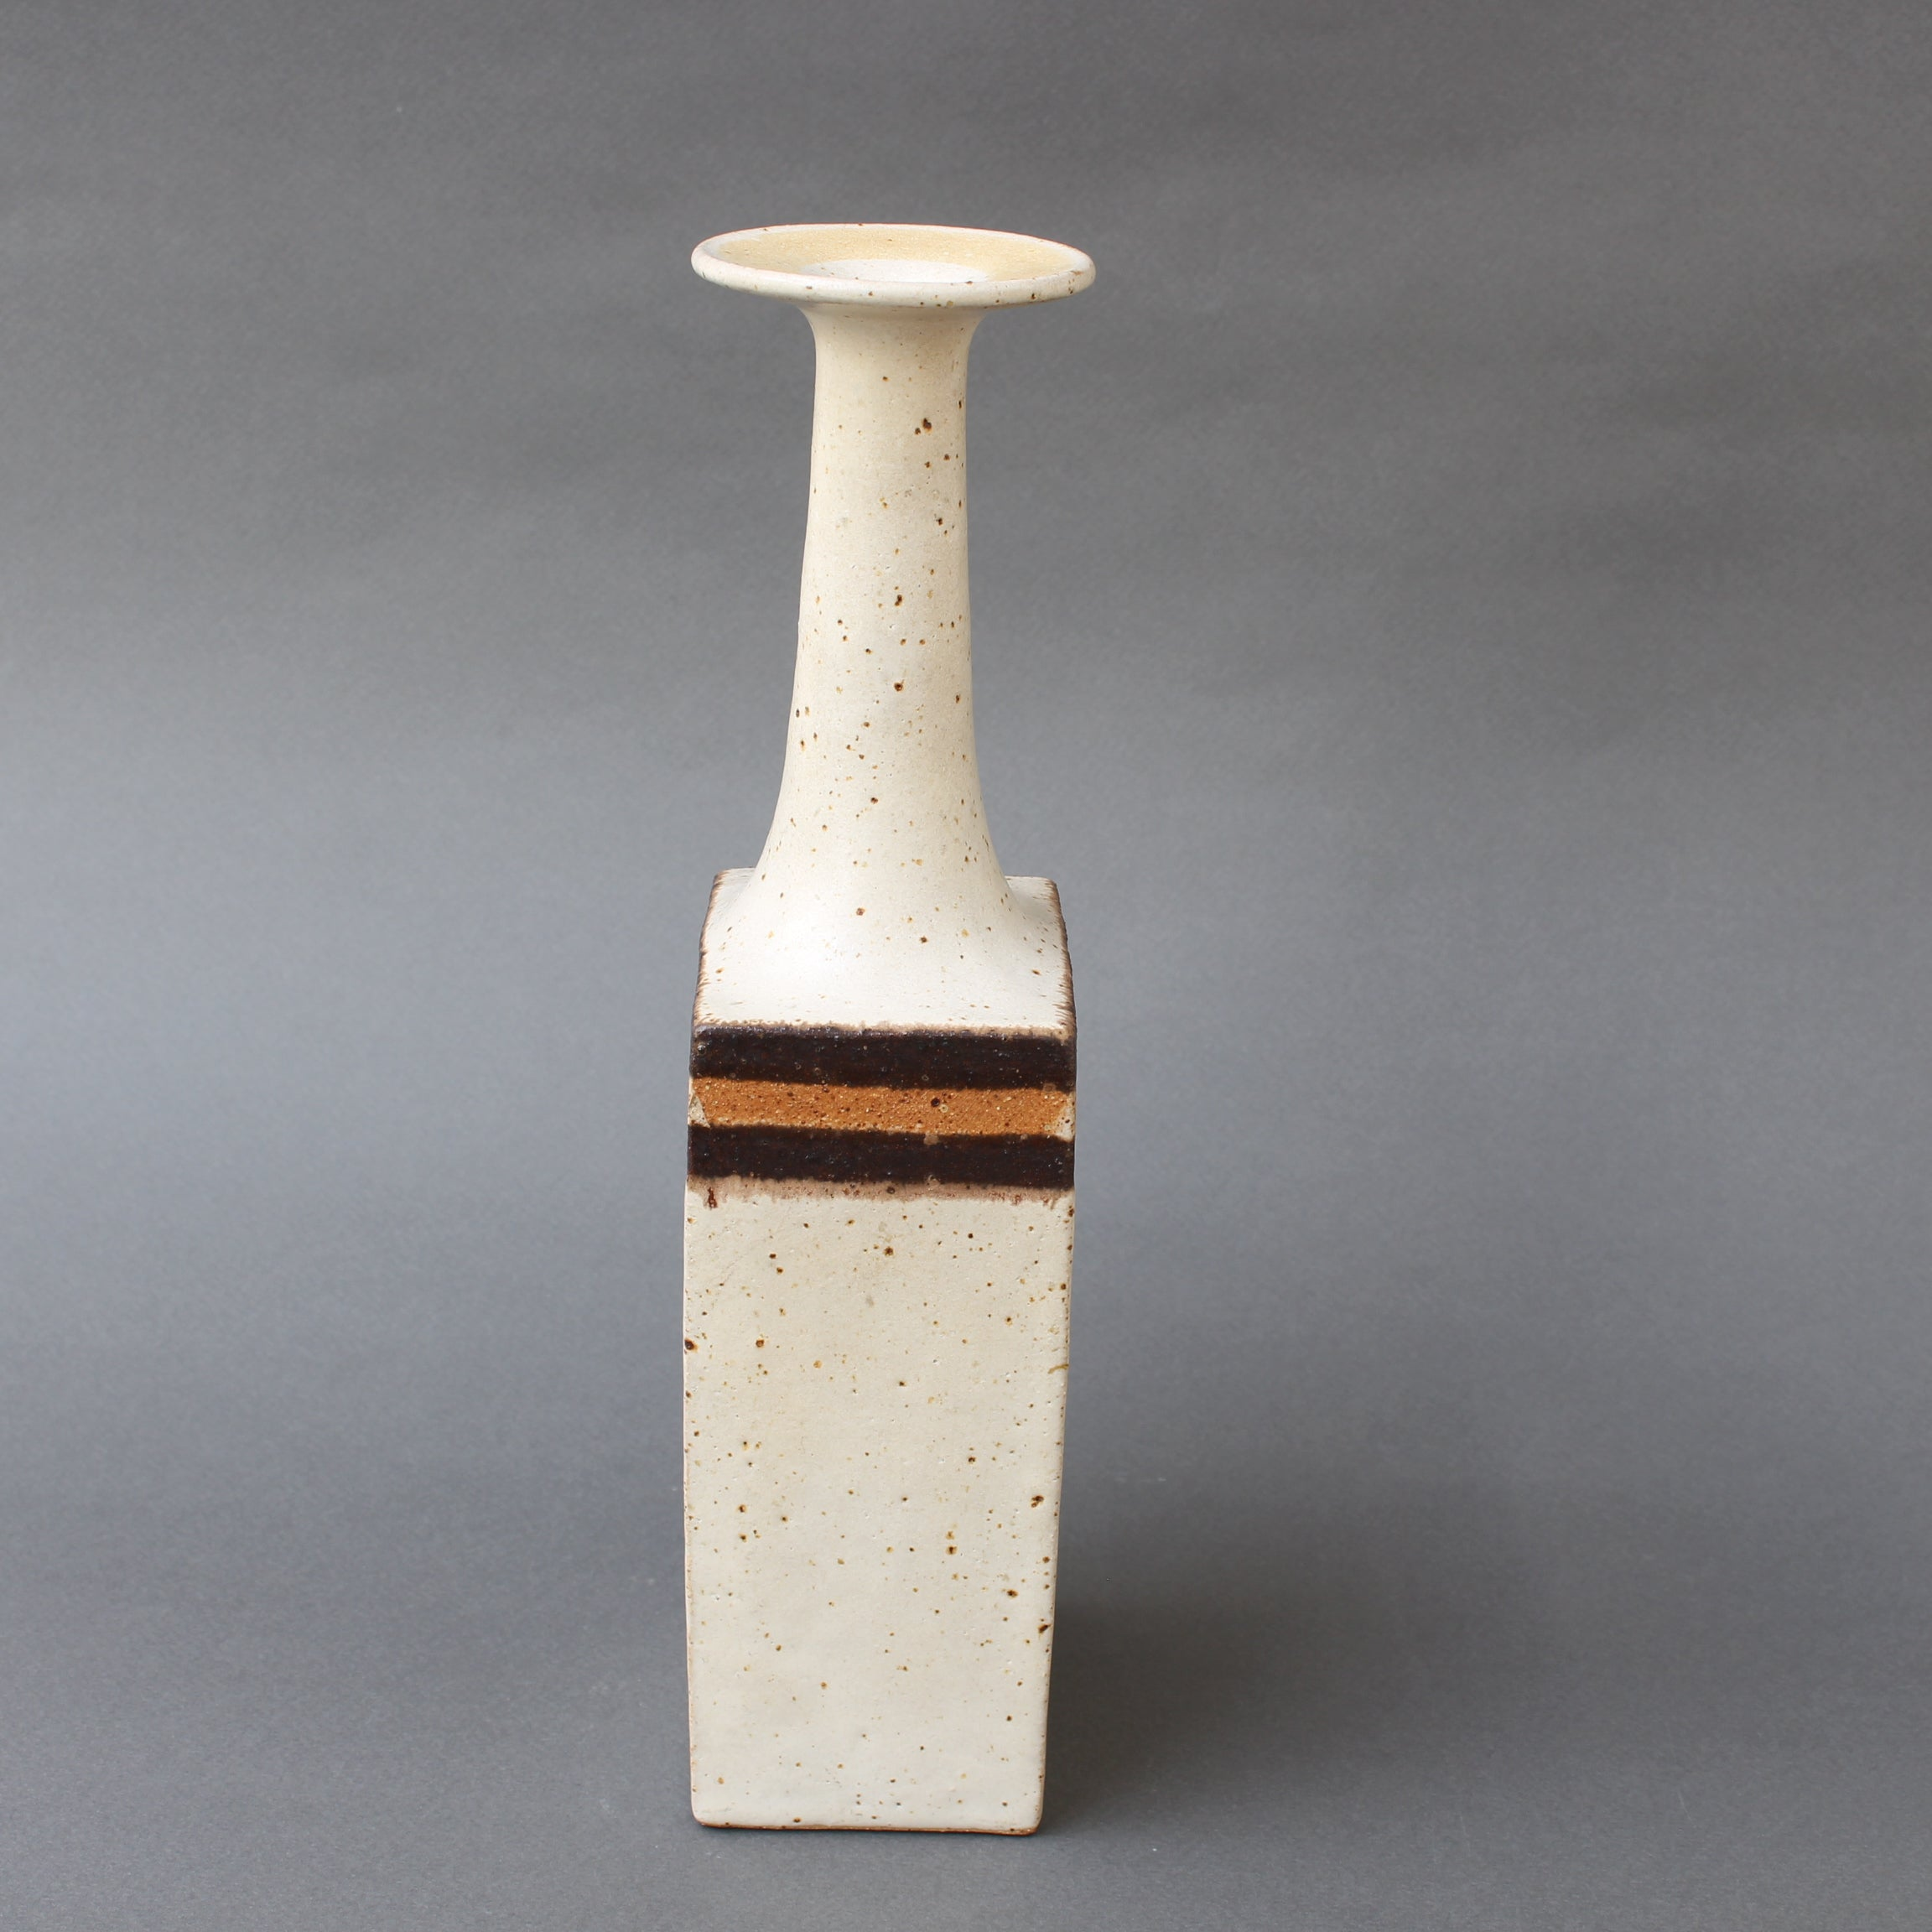 Ceramic Decorative Vessel by Bruno Gambone (circa 1970s)